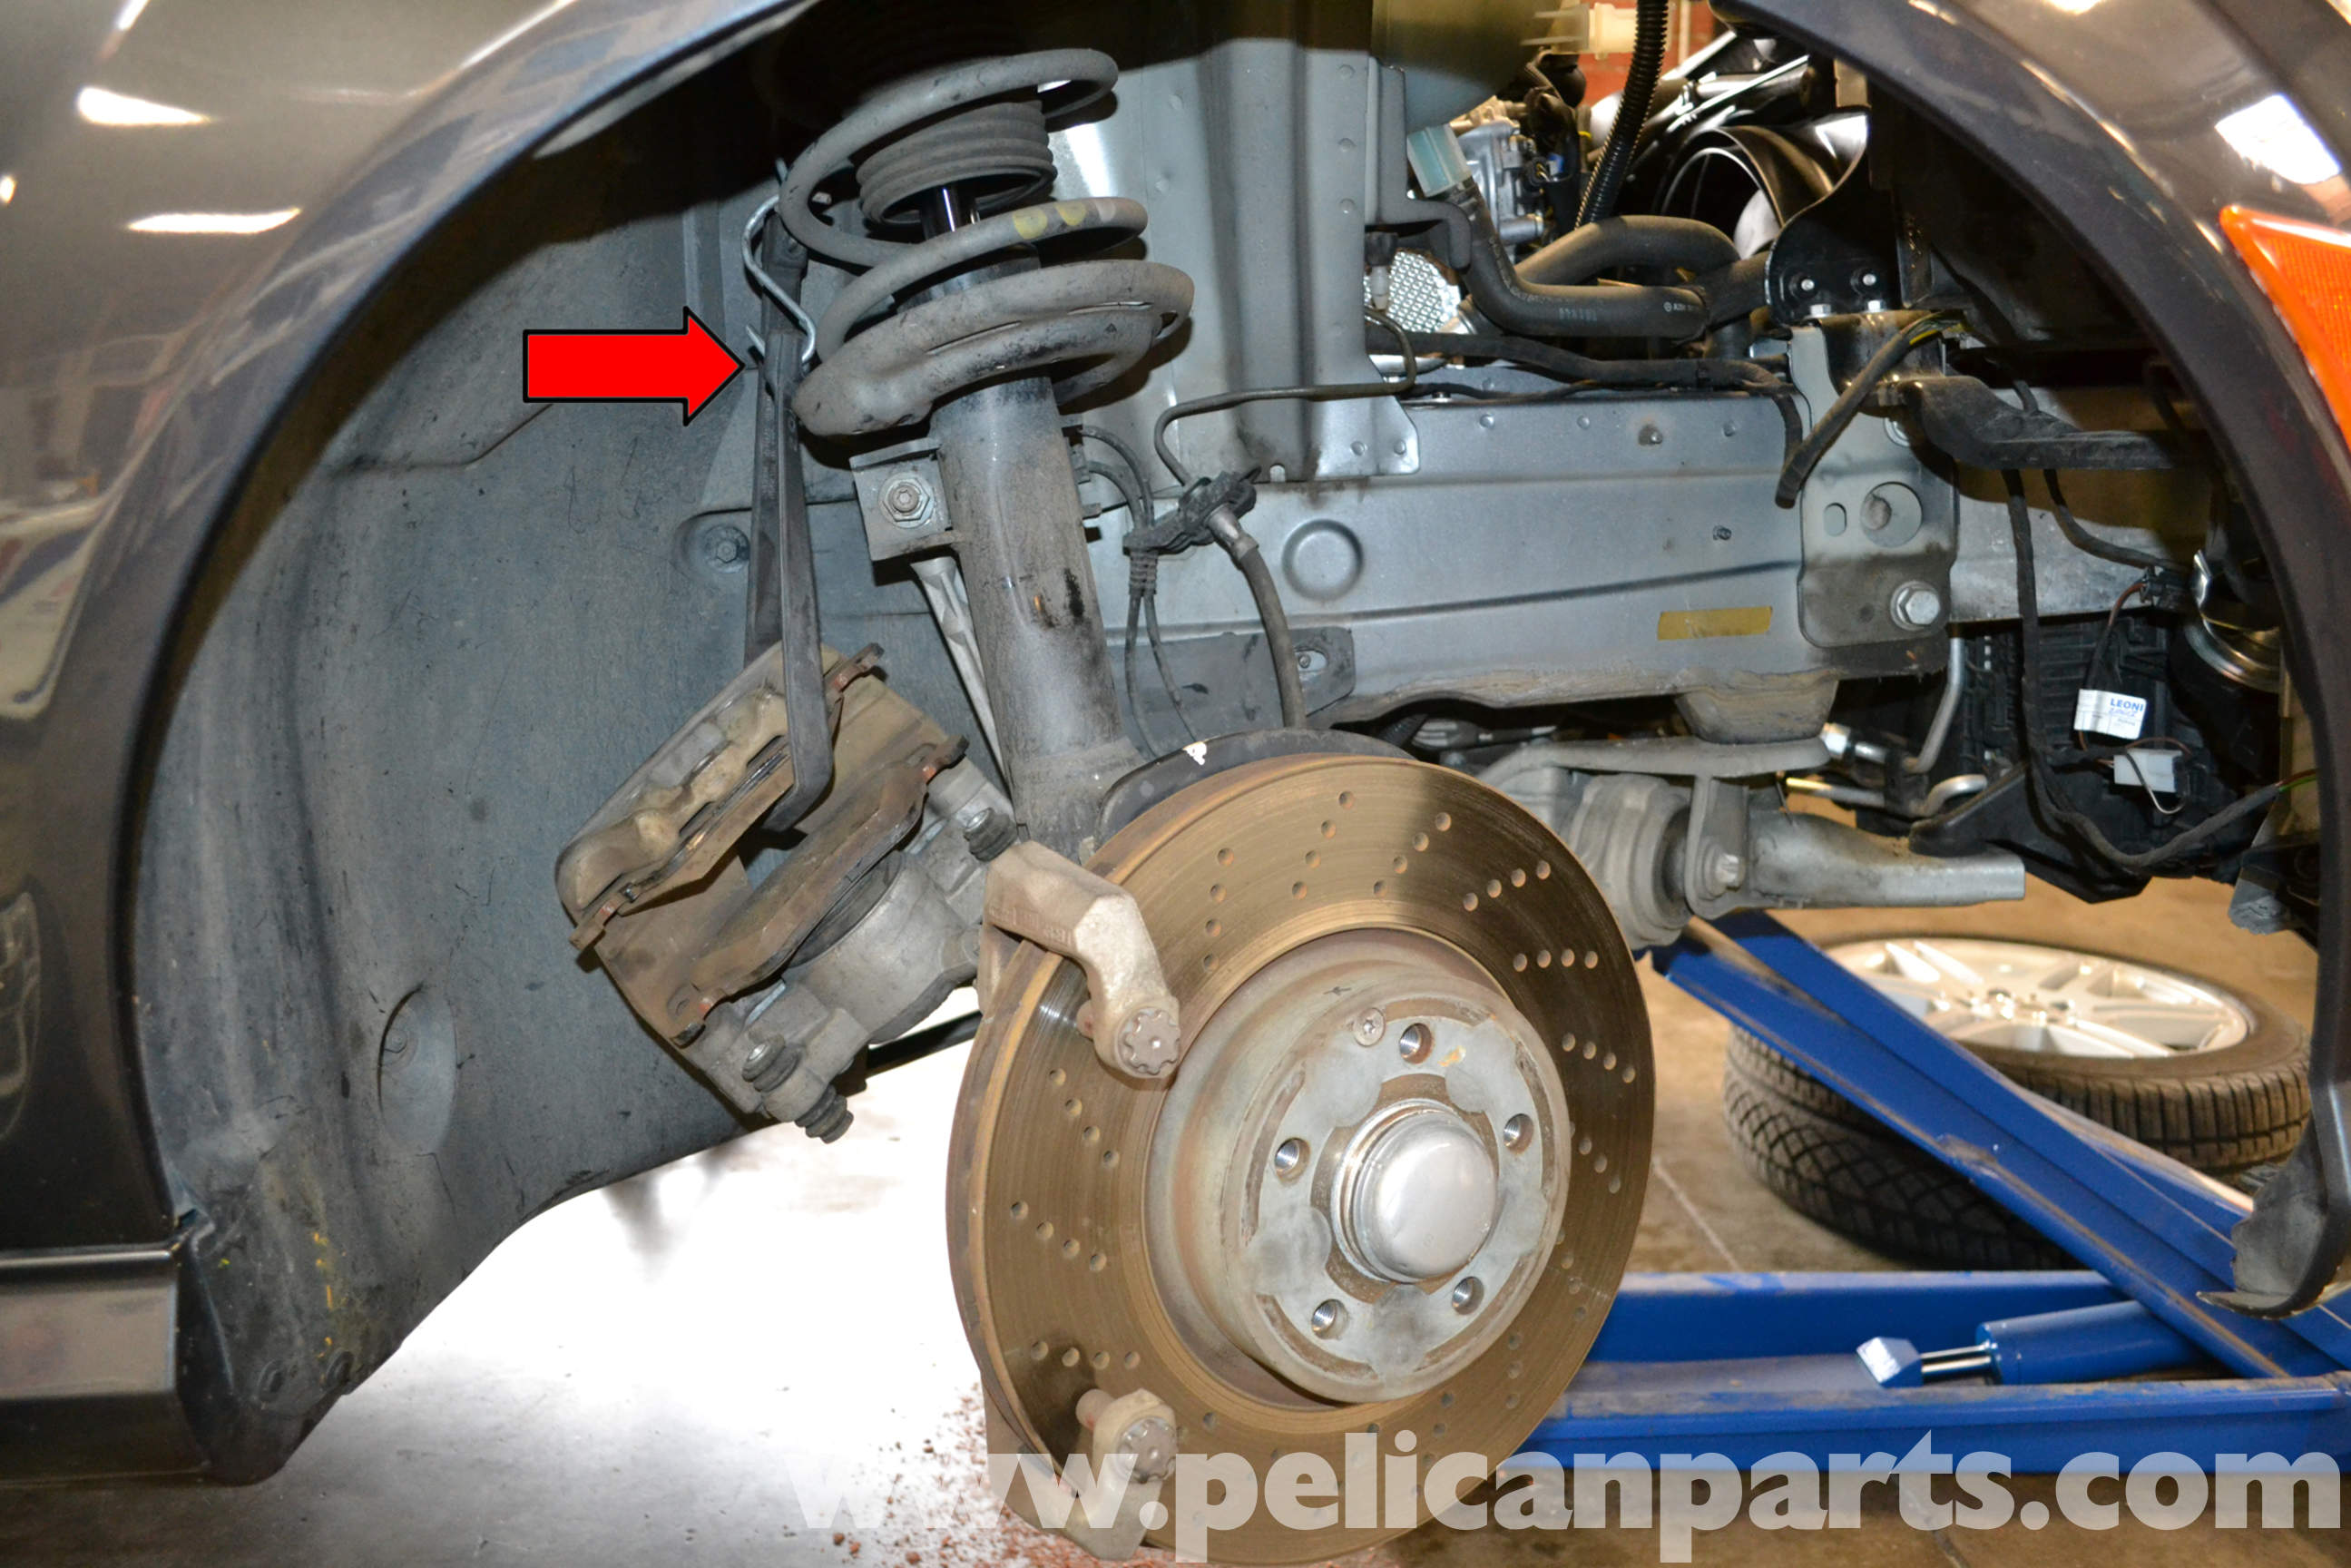 Pelican technical article mercedes benz w204 front for Mercedes benz rotors replacement